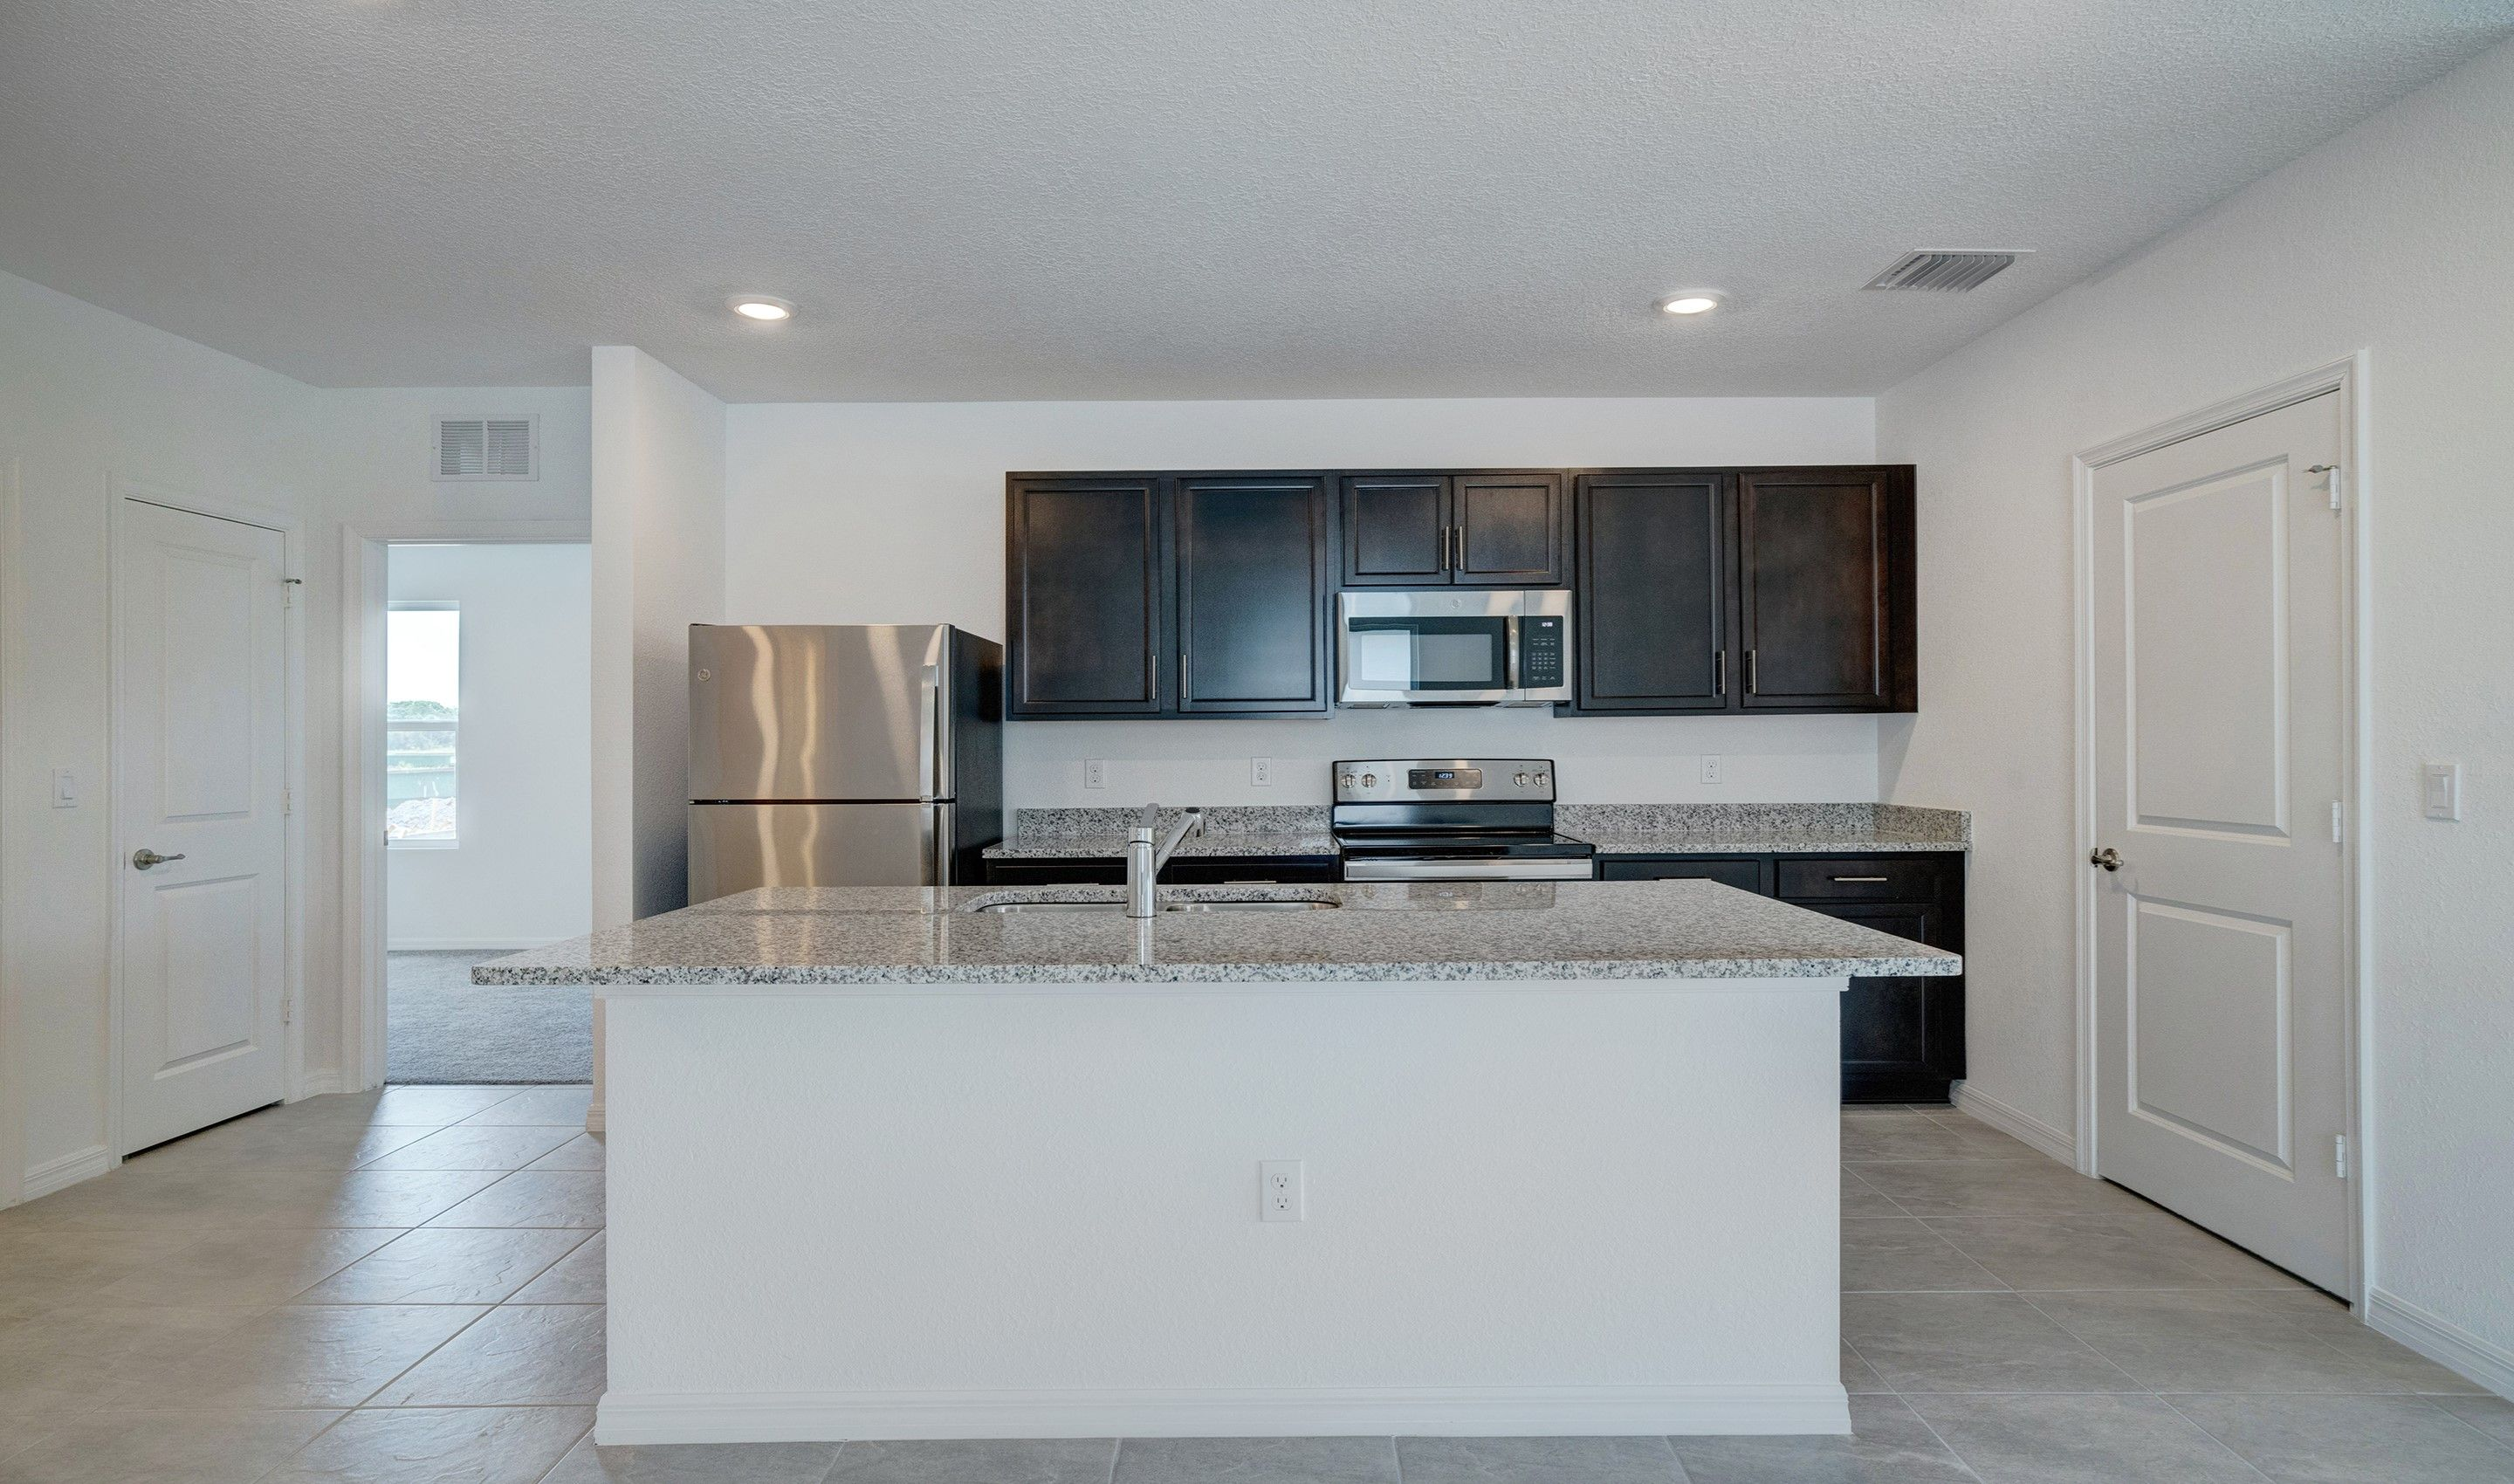 Kitchen featured in the Ashmere By K. Hovnanian® Homes in Tampa-St. Petersburg, FL